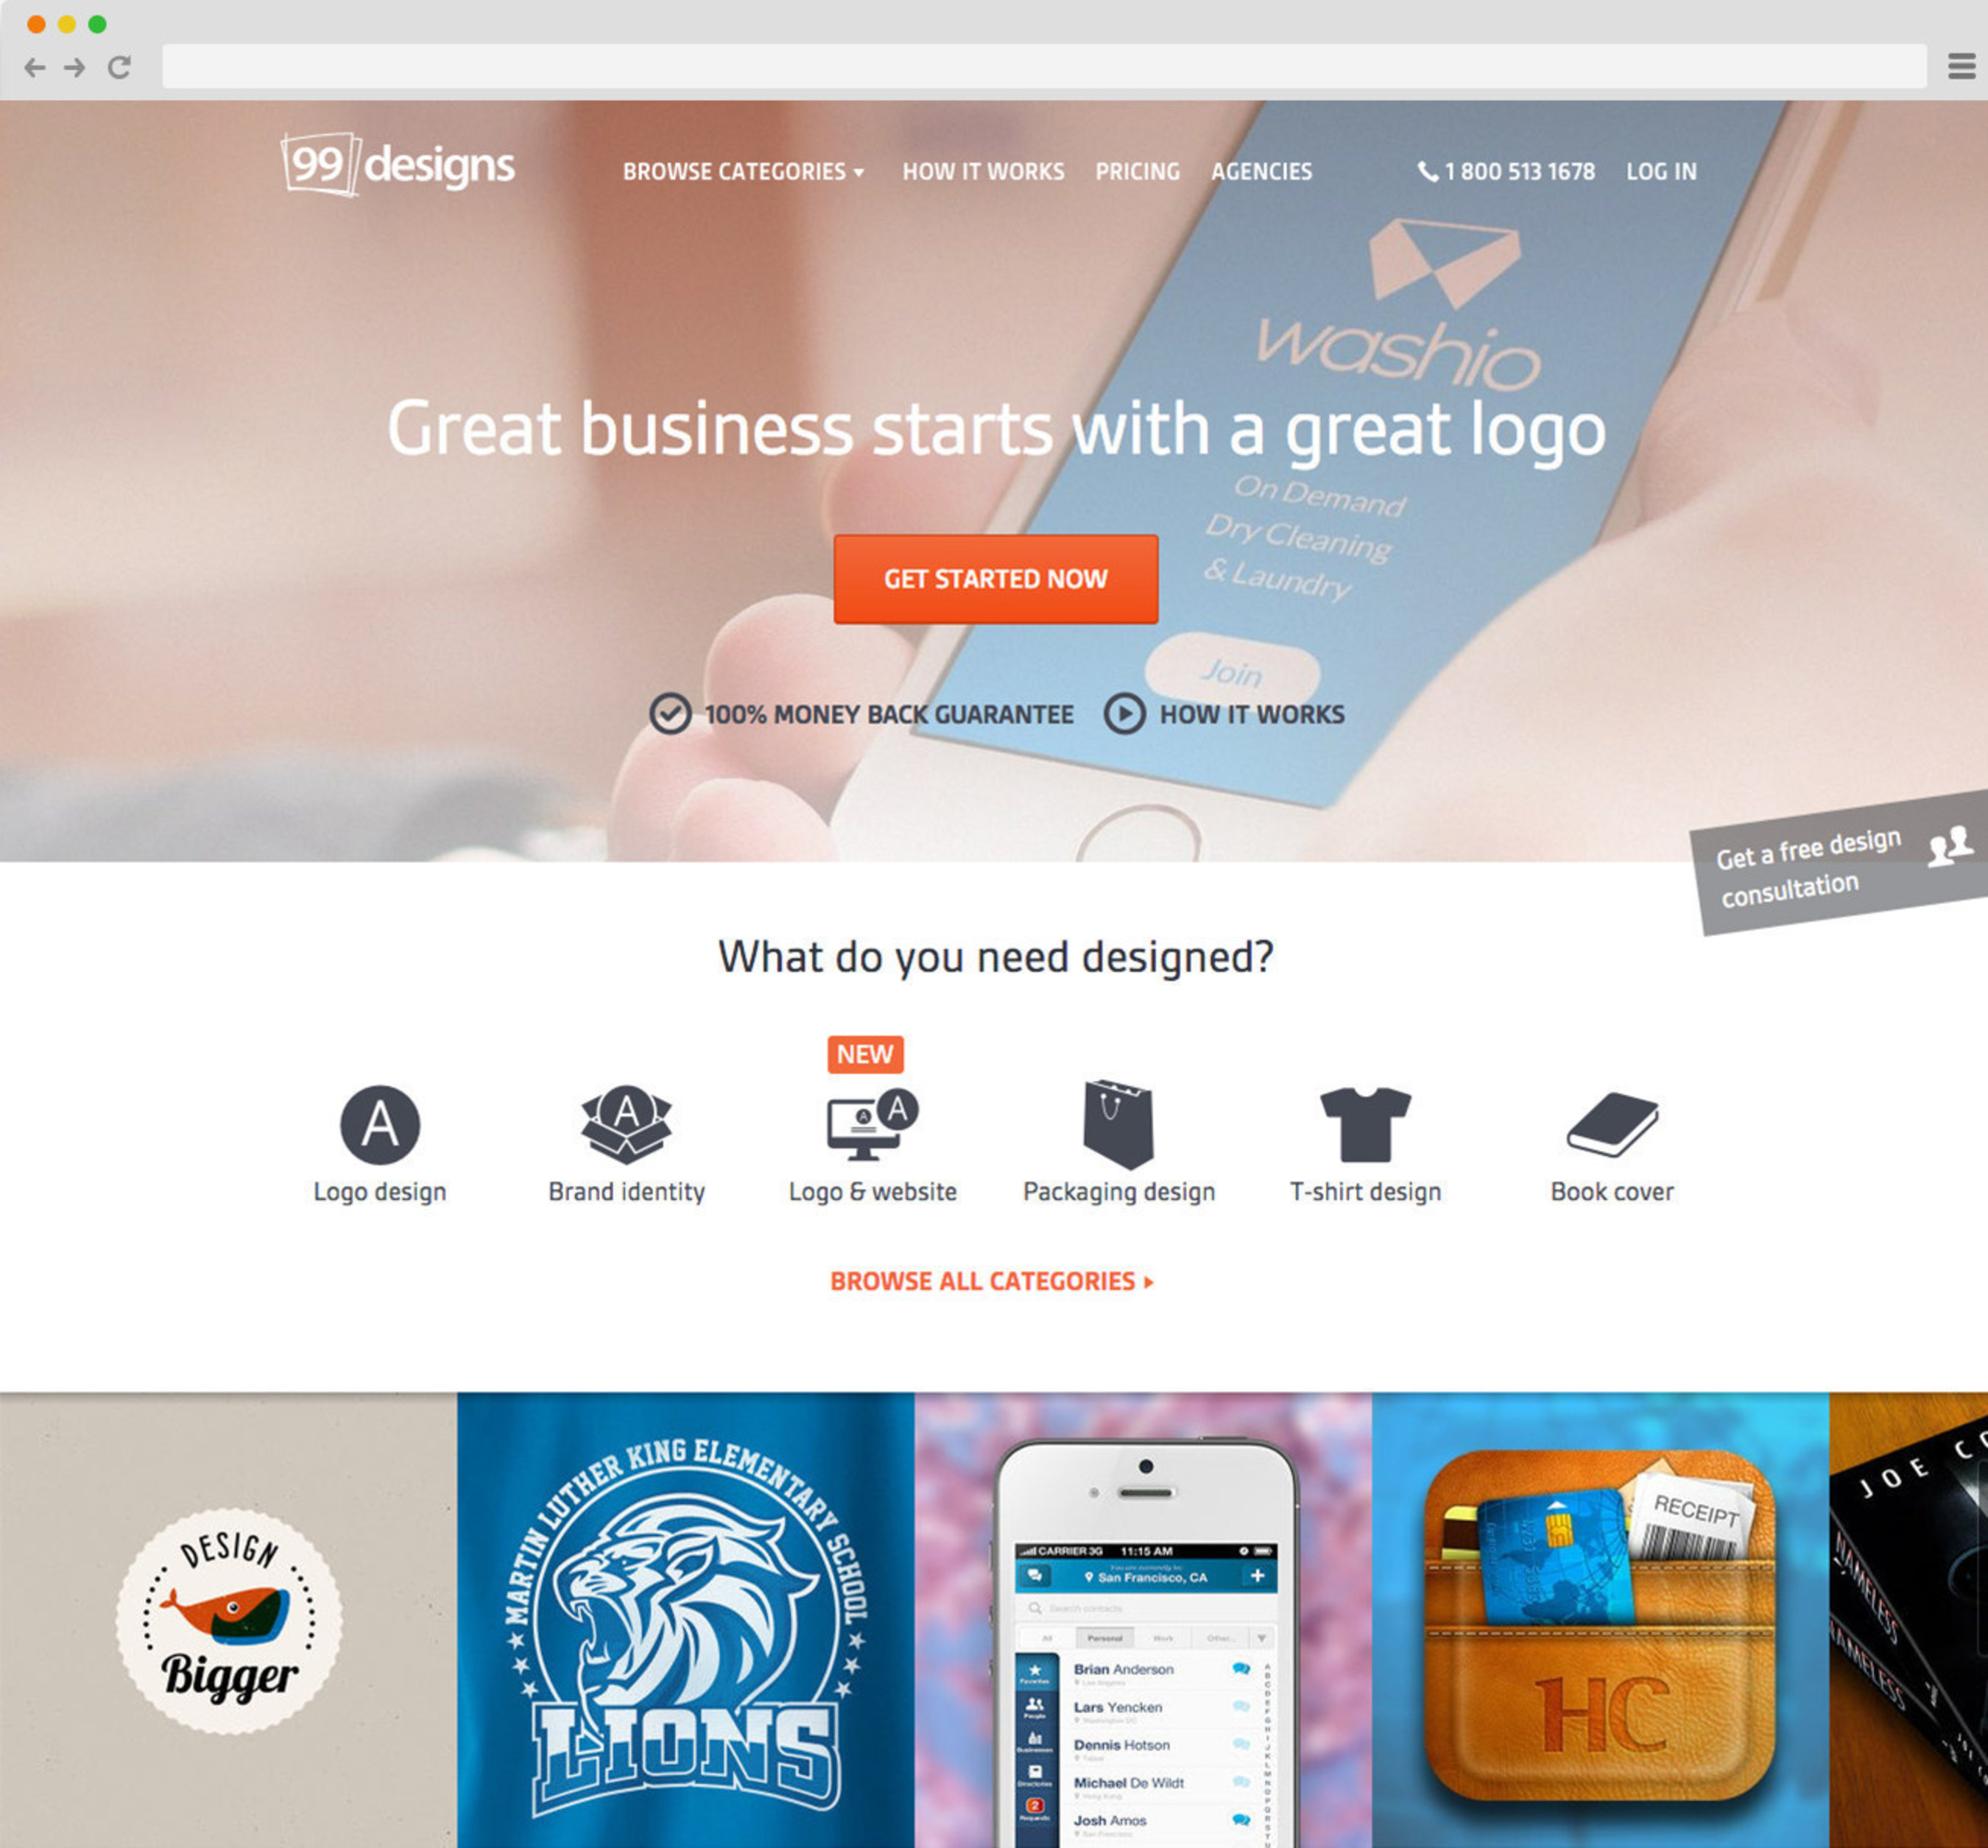 Great businesses start with a great logo.